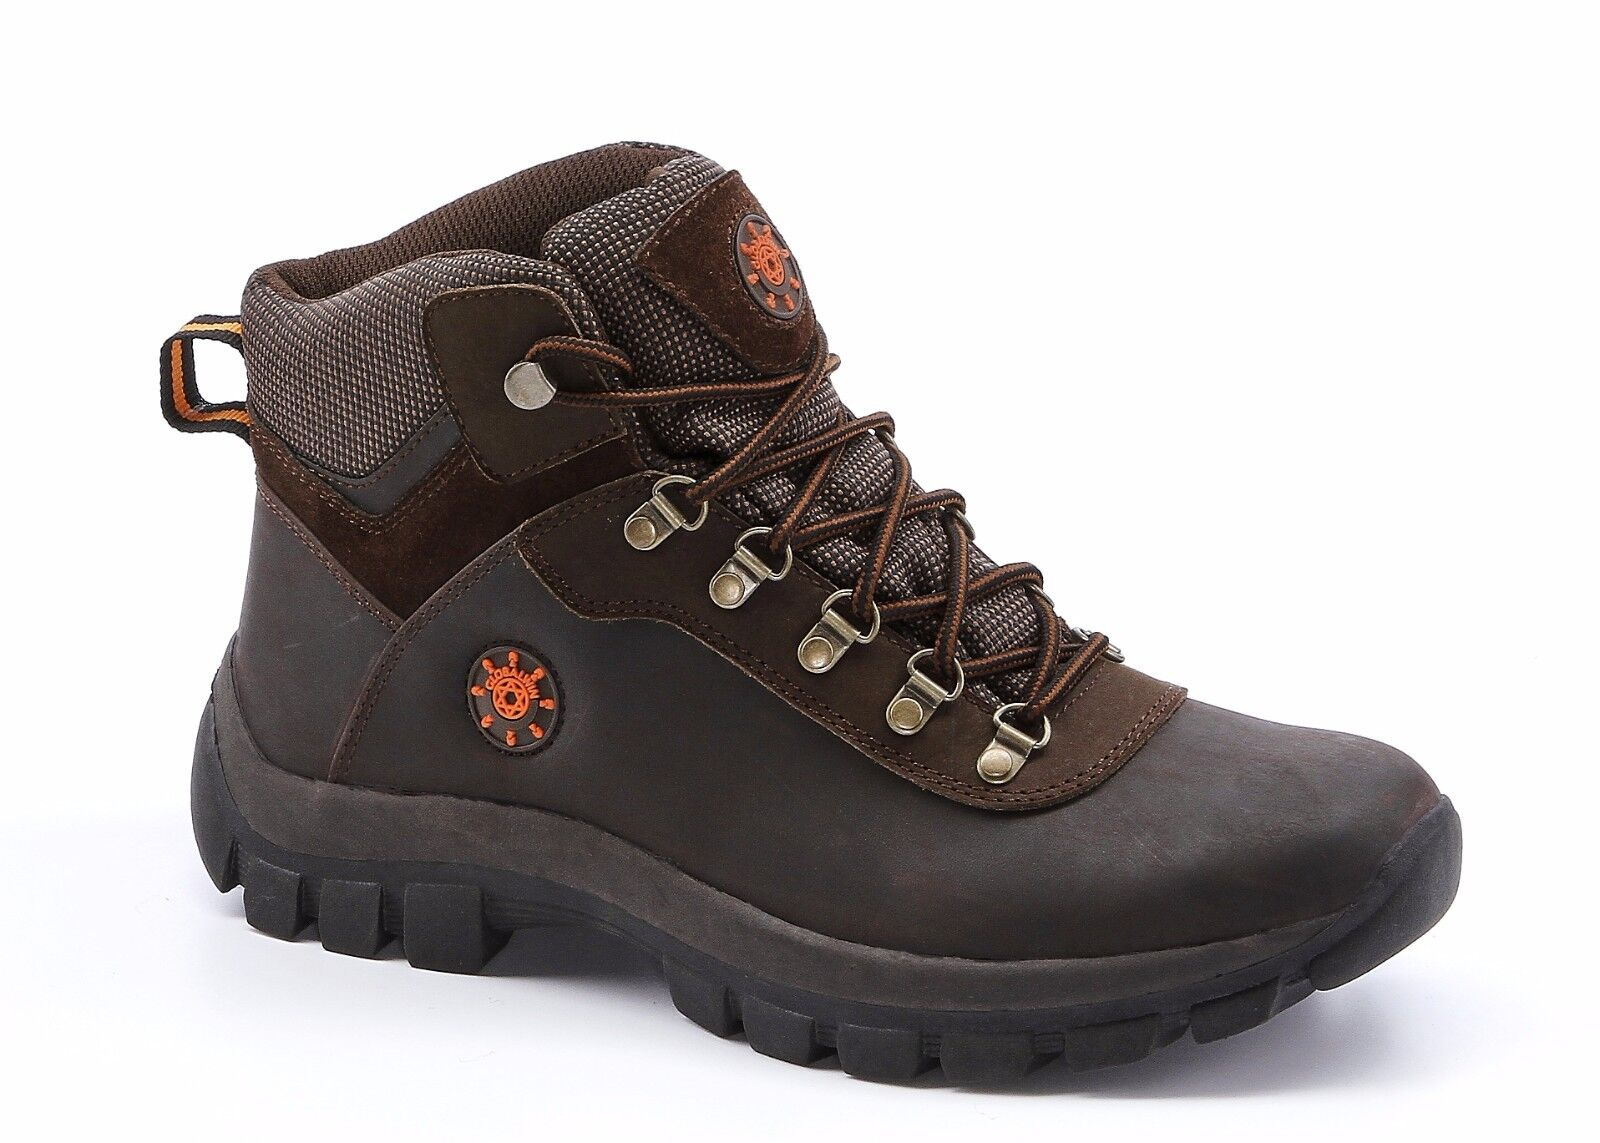 Boots - KINGSHOW Men's 15511552  Work Boots